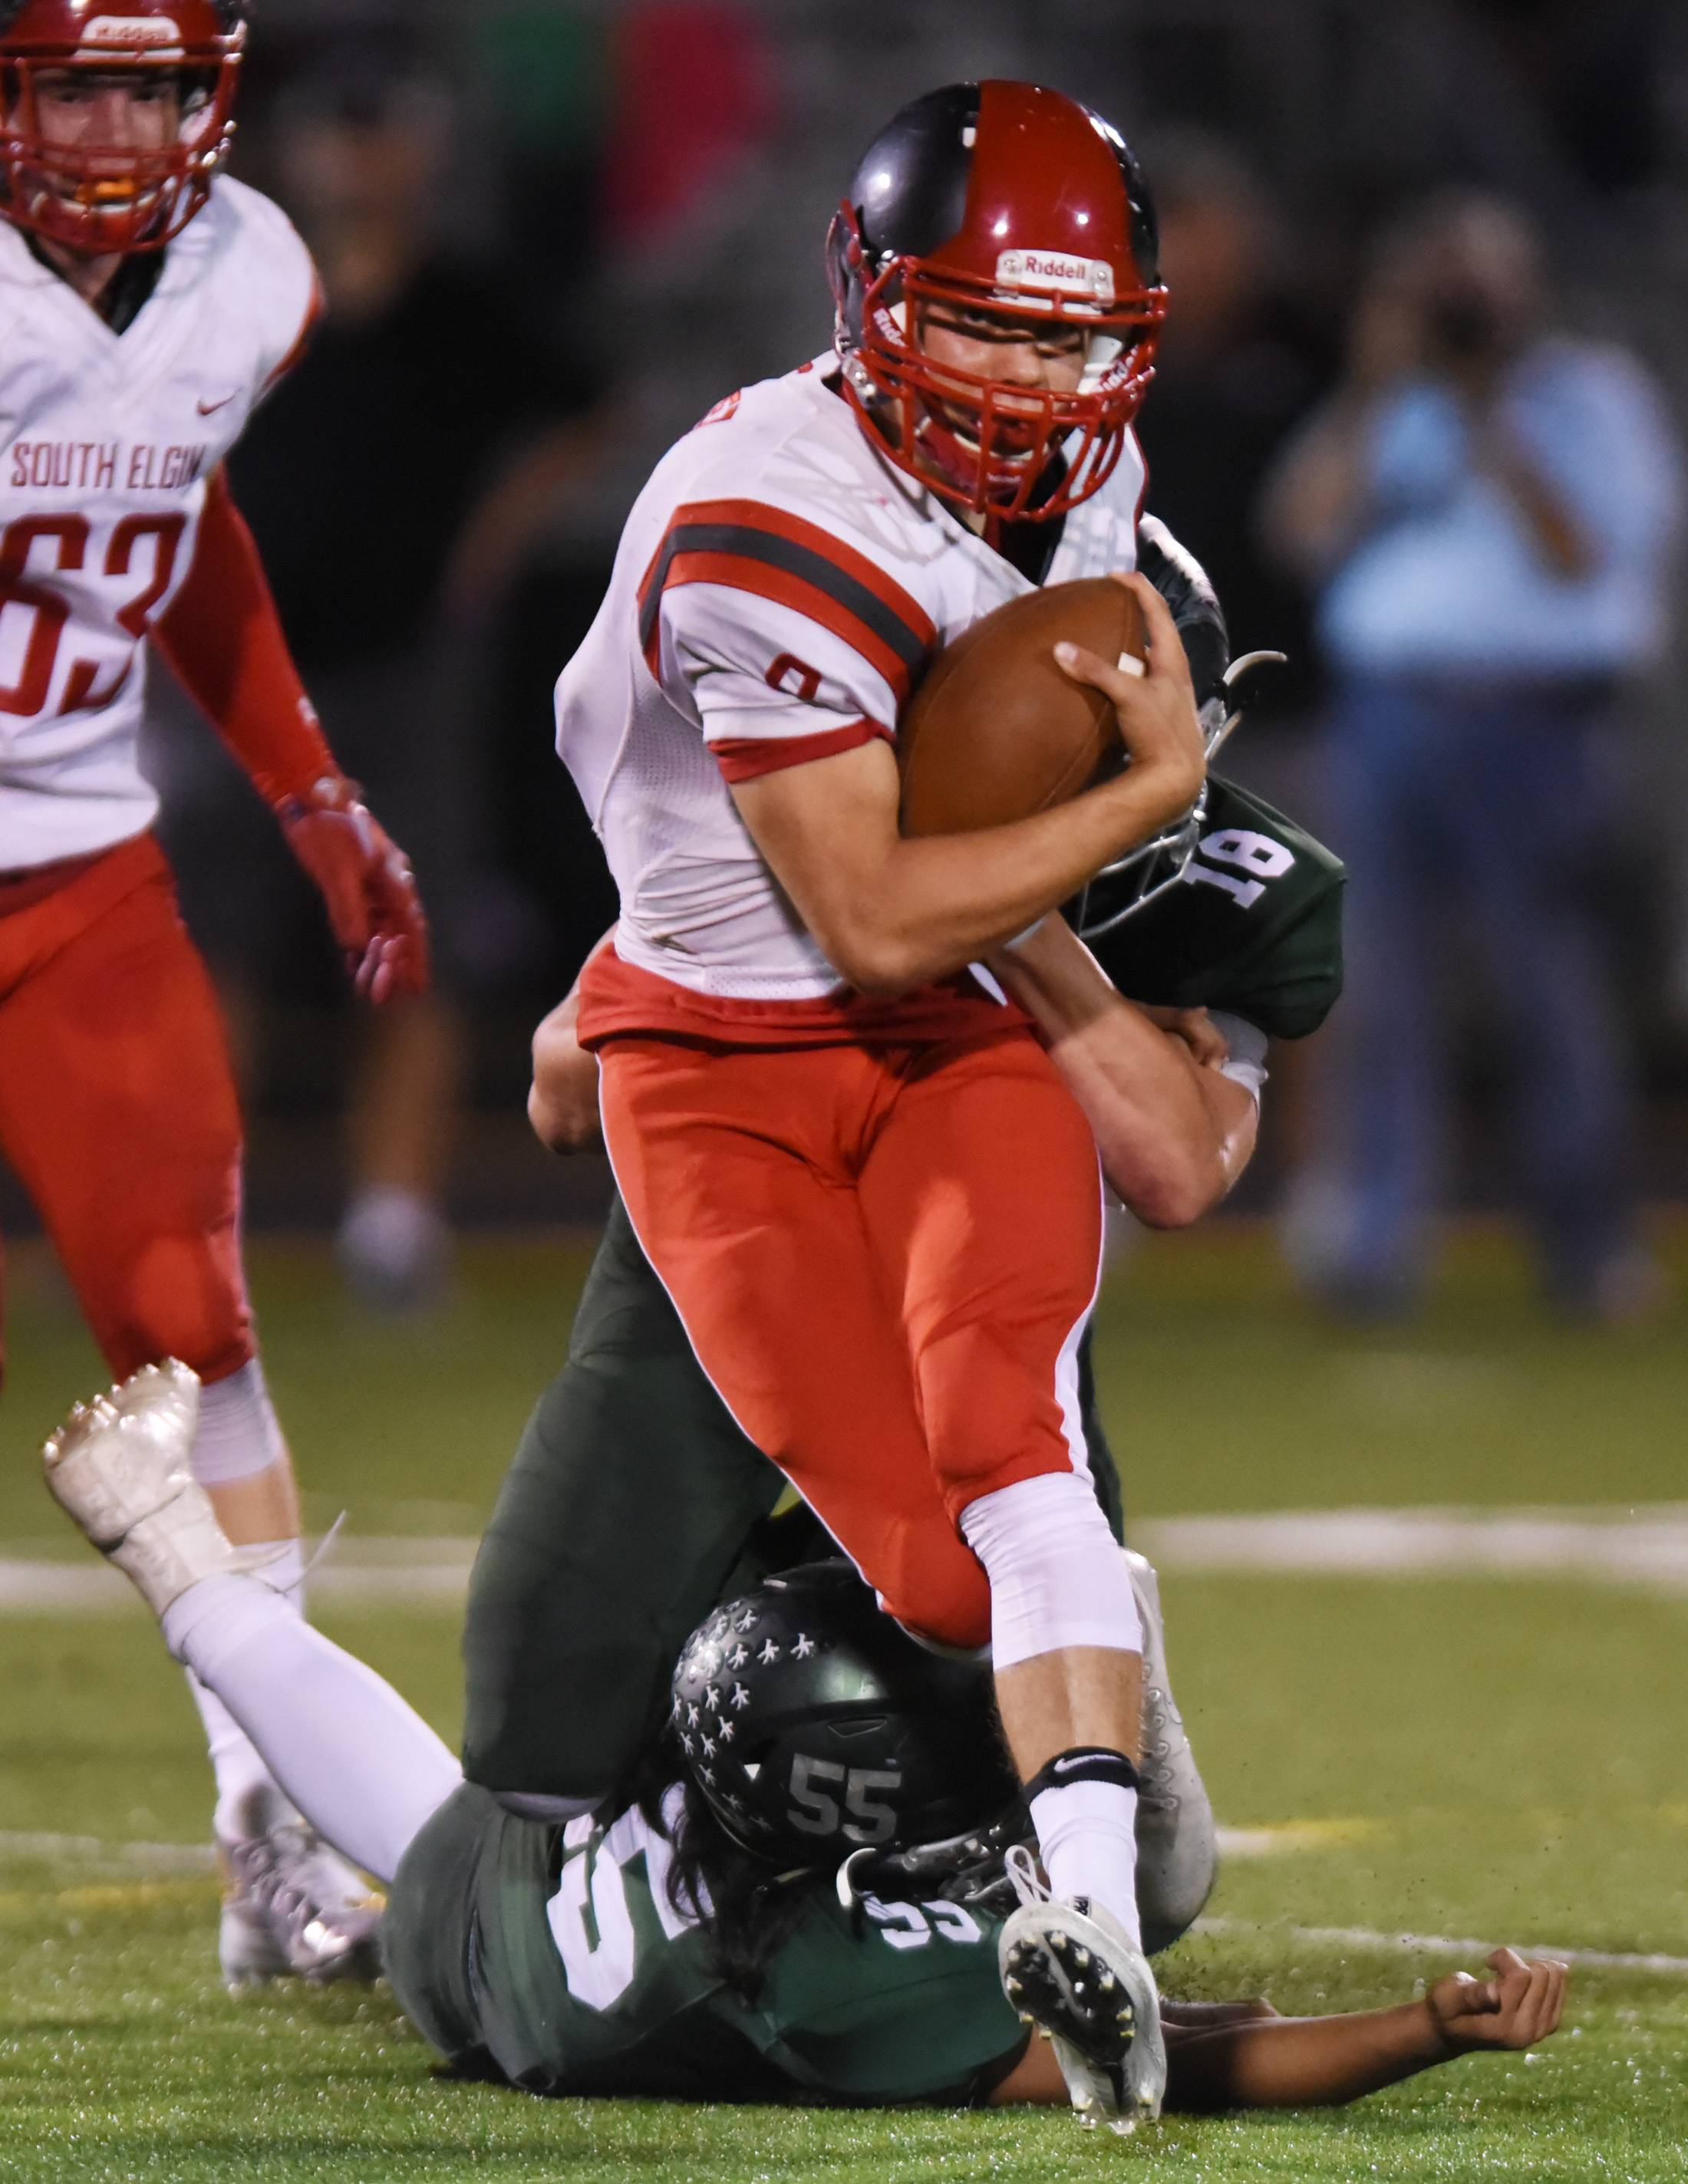 South Elgin quarterback Nate Gomez runs for yardage against Bartlett last Friday at Millennium Field in Streamwood. Gomez and the Storm host West Aurora Saturday in an Upstate Eight Valley battle of unbeaten teams.